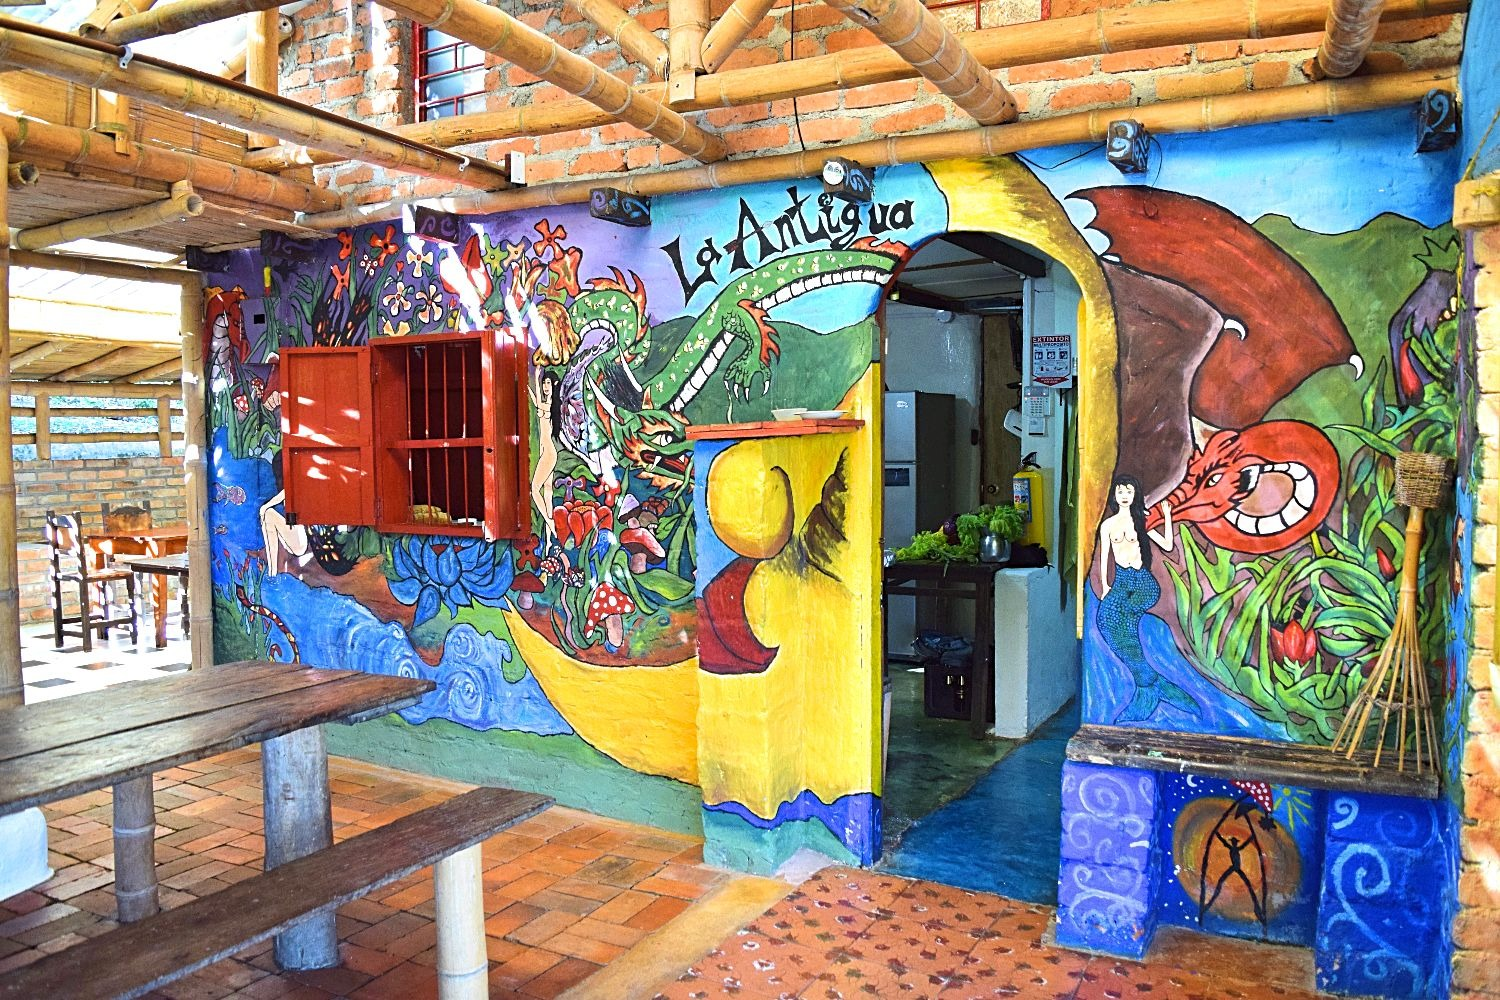 Eco hotel San Agustin Colombia - featured